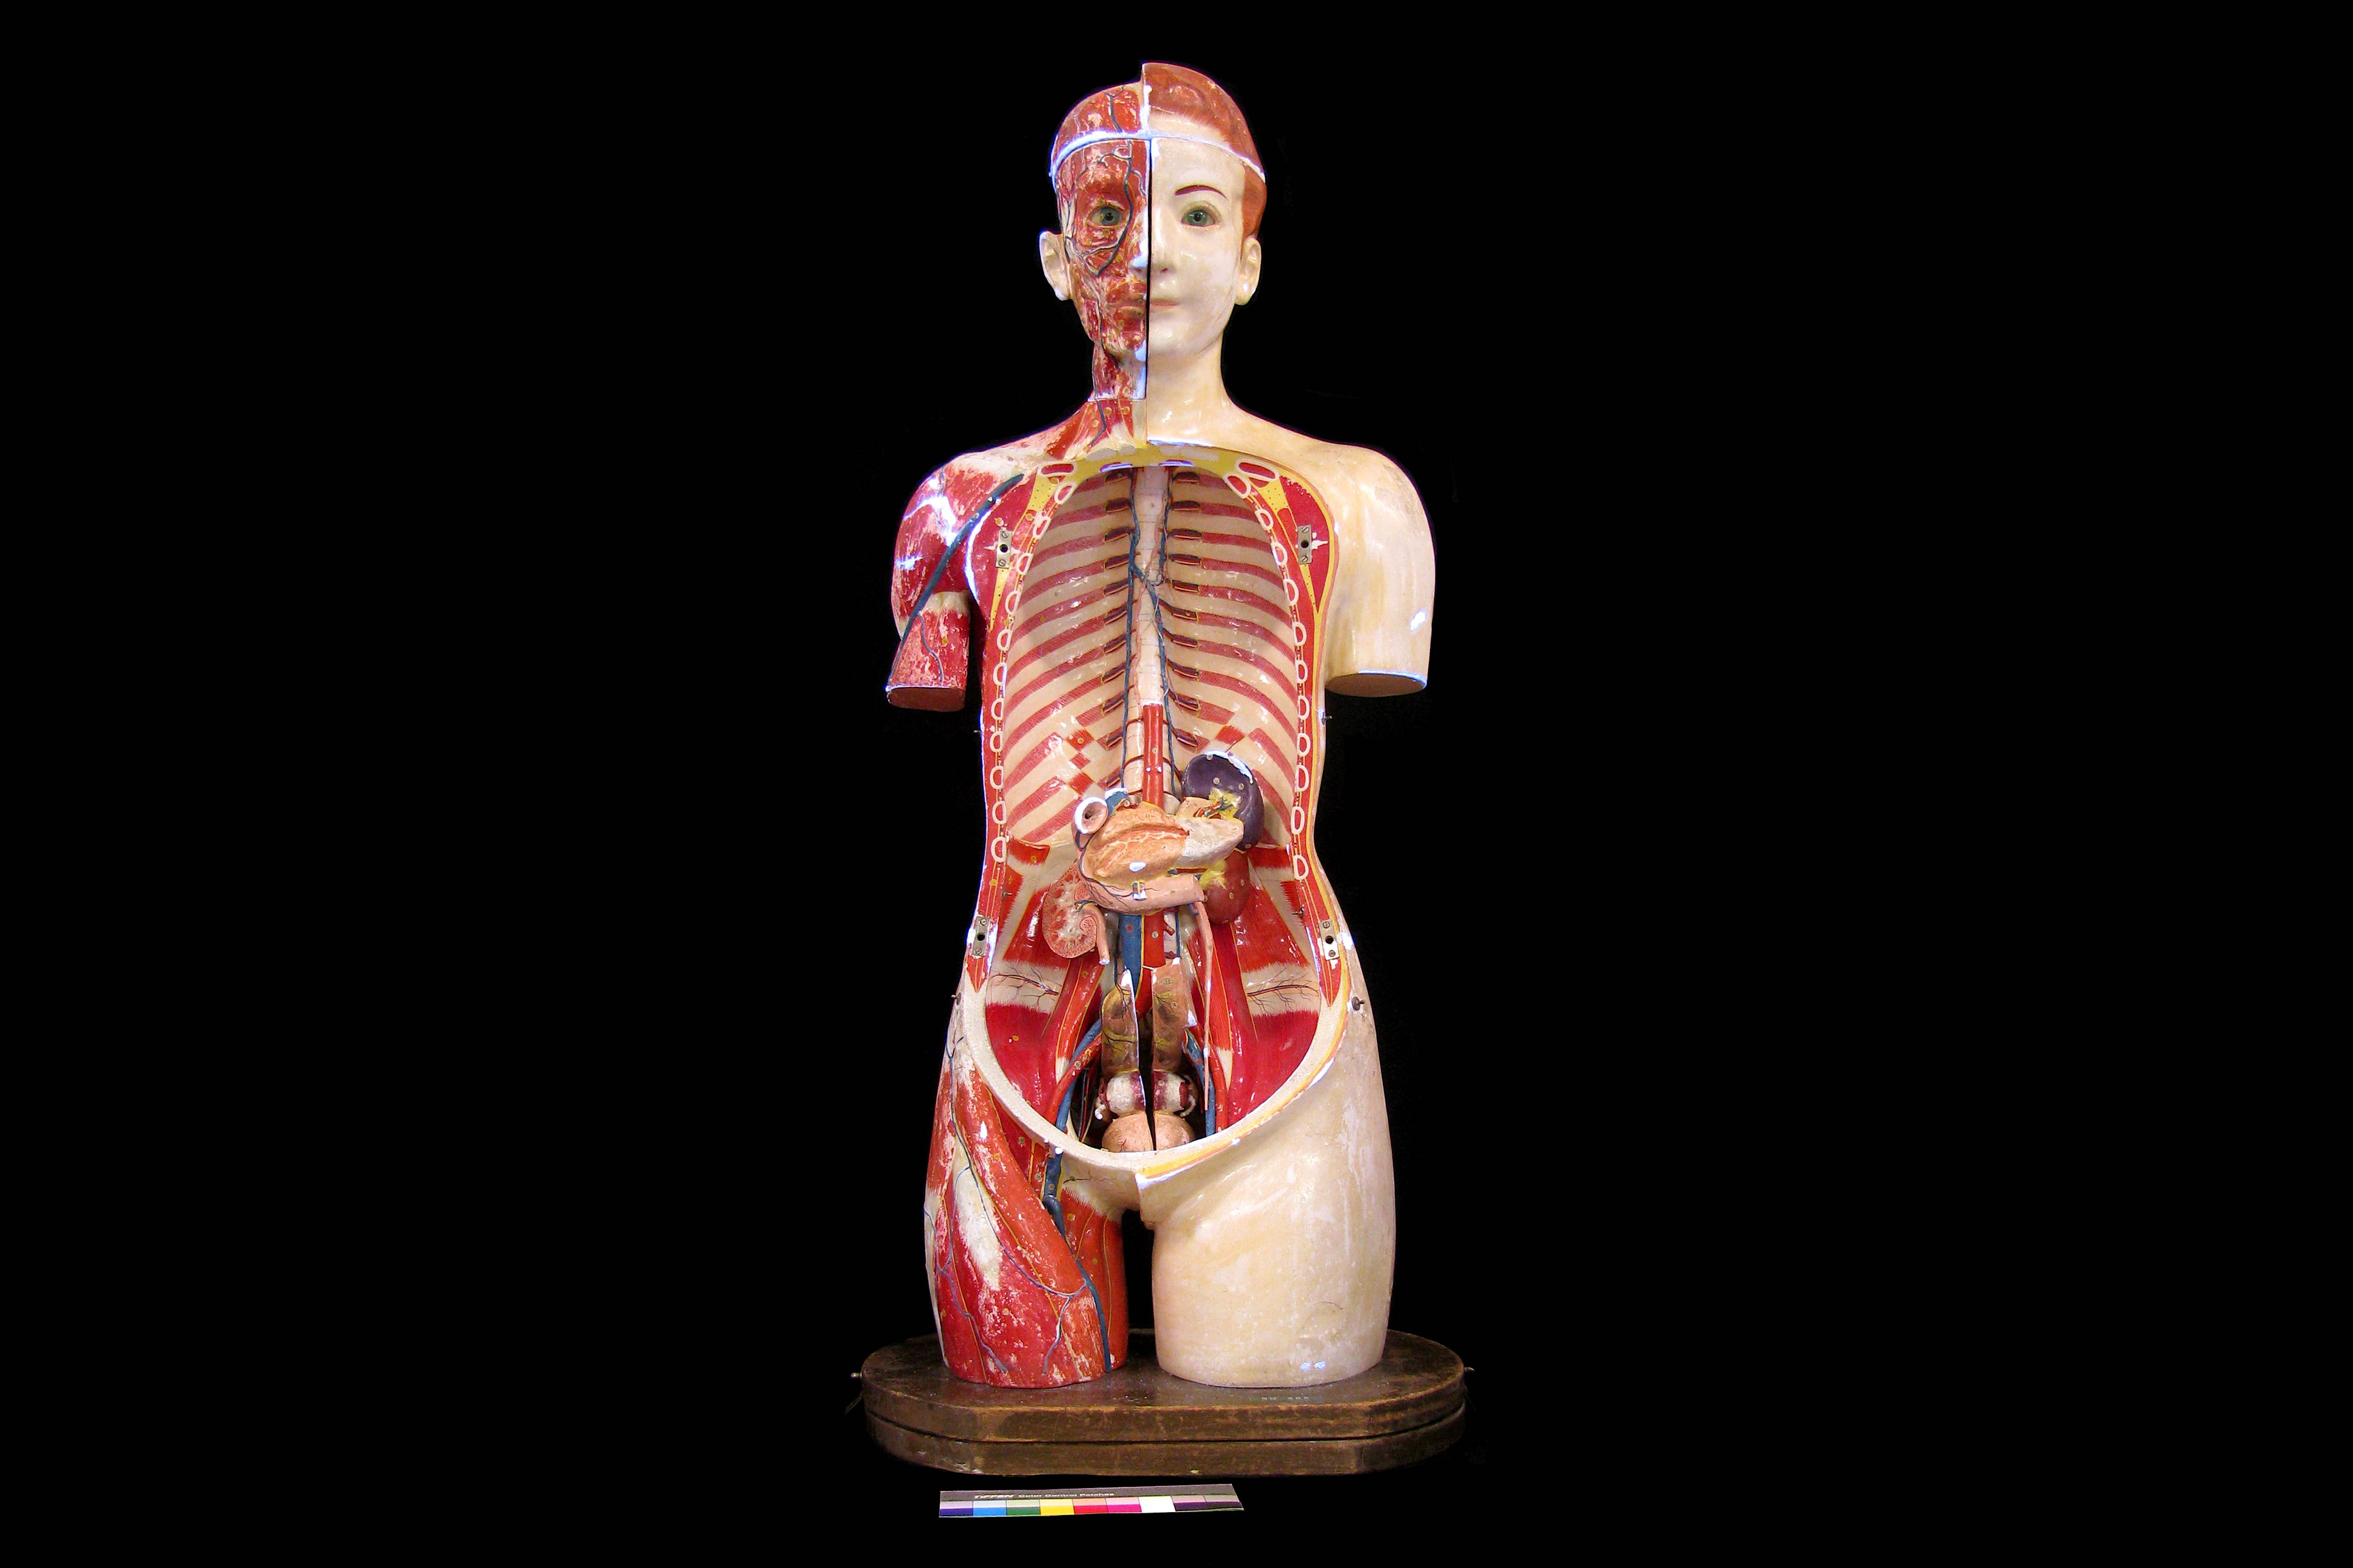 A FINE 1930'S JAPANESE LIFE-SIZE ANATOMICAL MODEL TORSO OF THE FEMALE FIGURE PRODUCED IN 1934 BY THE - Image 9 of 9